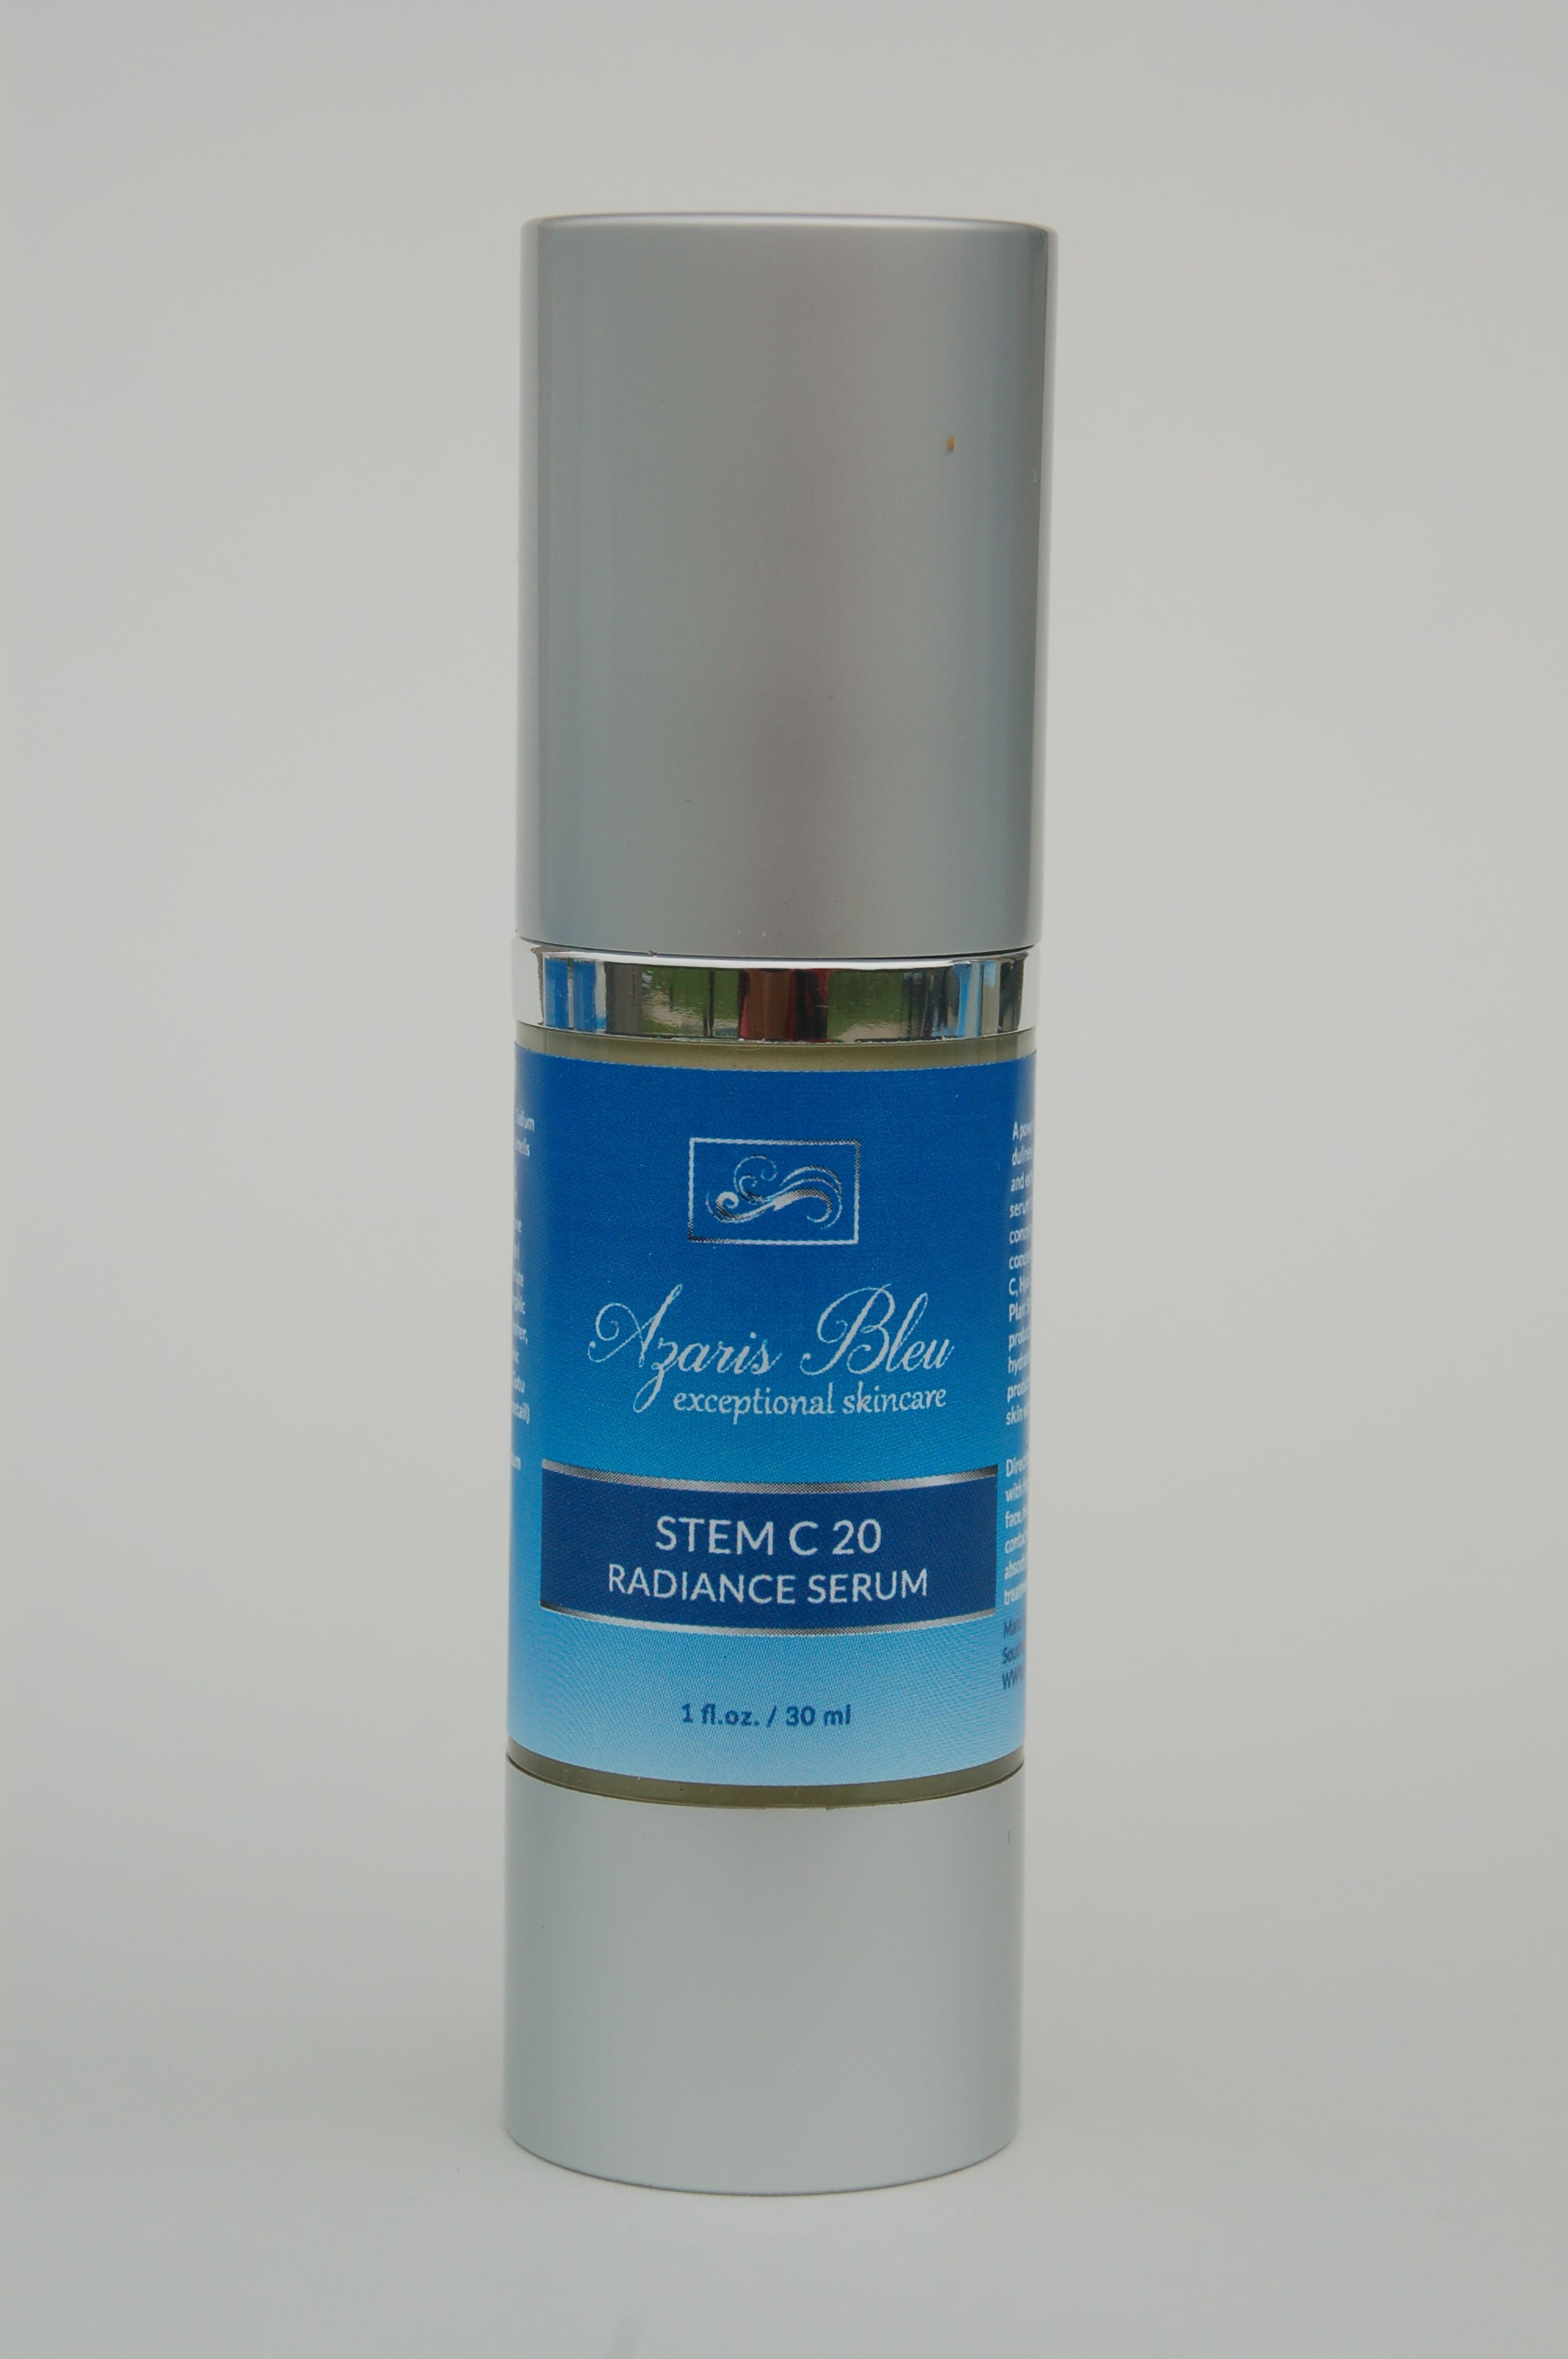 Stem C 20 Radiance Serum (1oz.)